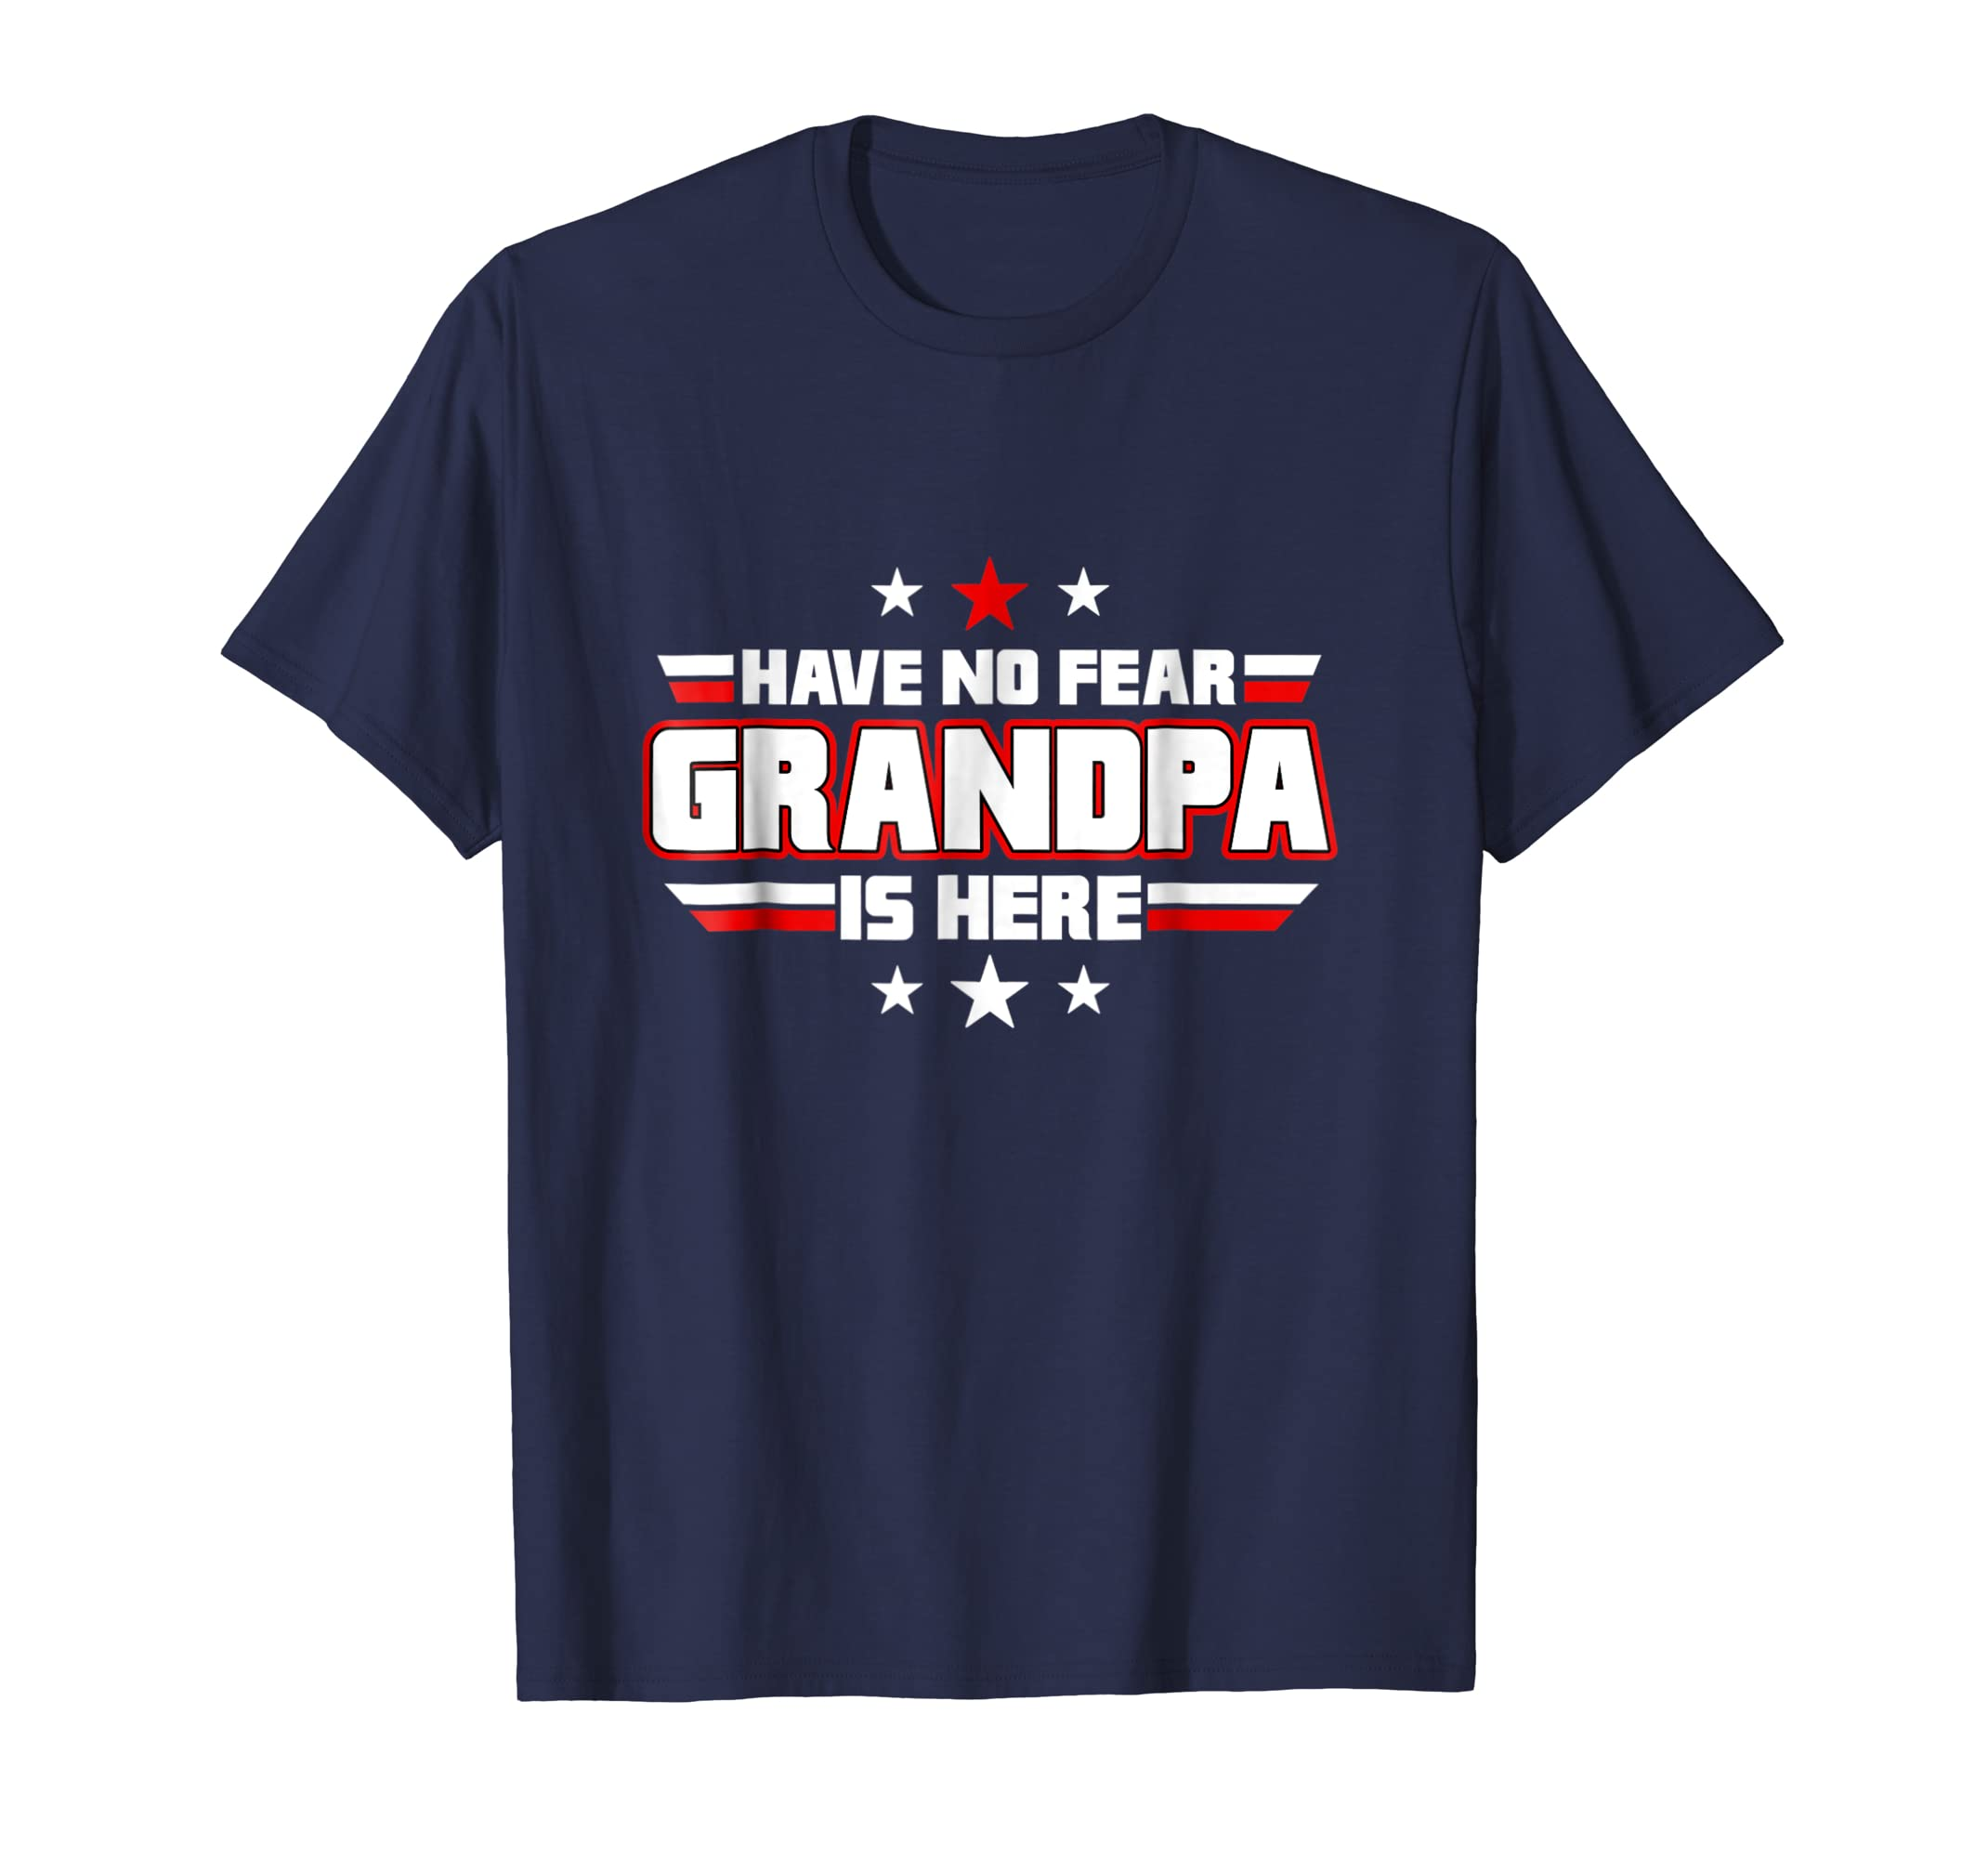 Have no fear, Grandpa is here. Grandpa Gifts For Fathers Day-AZP